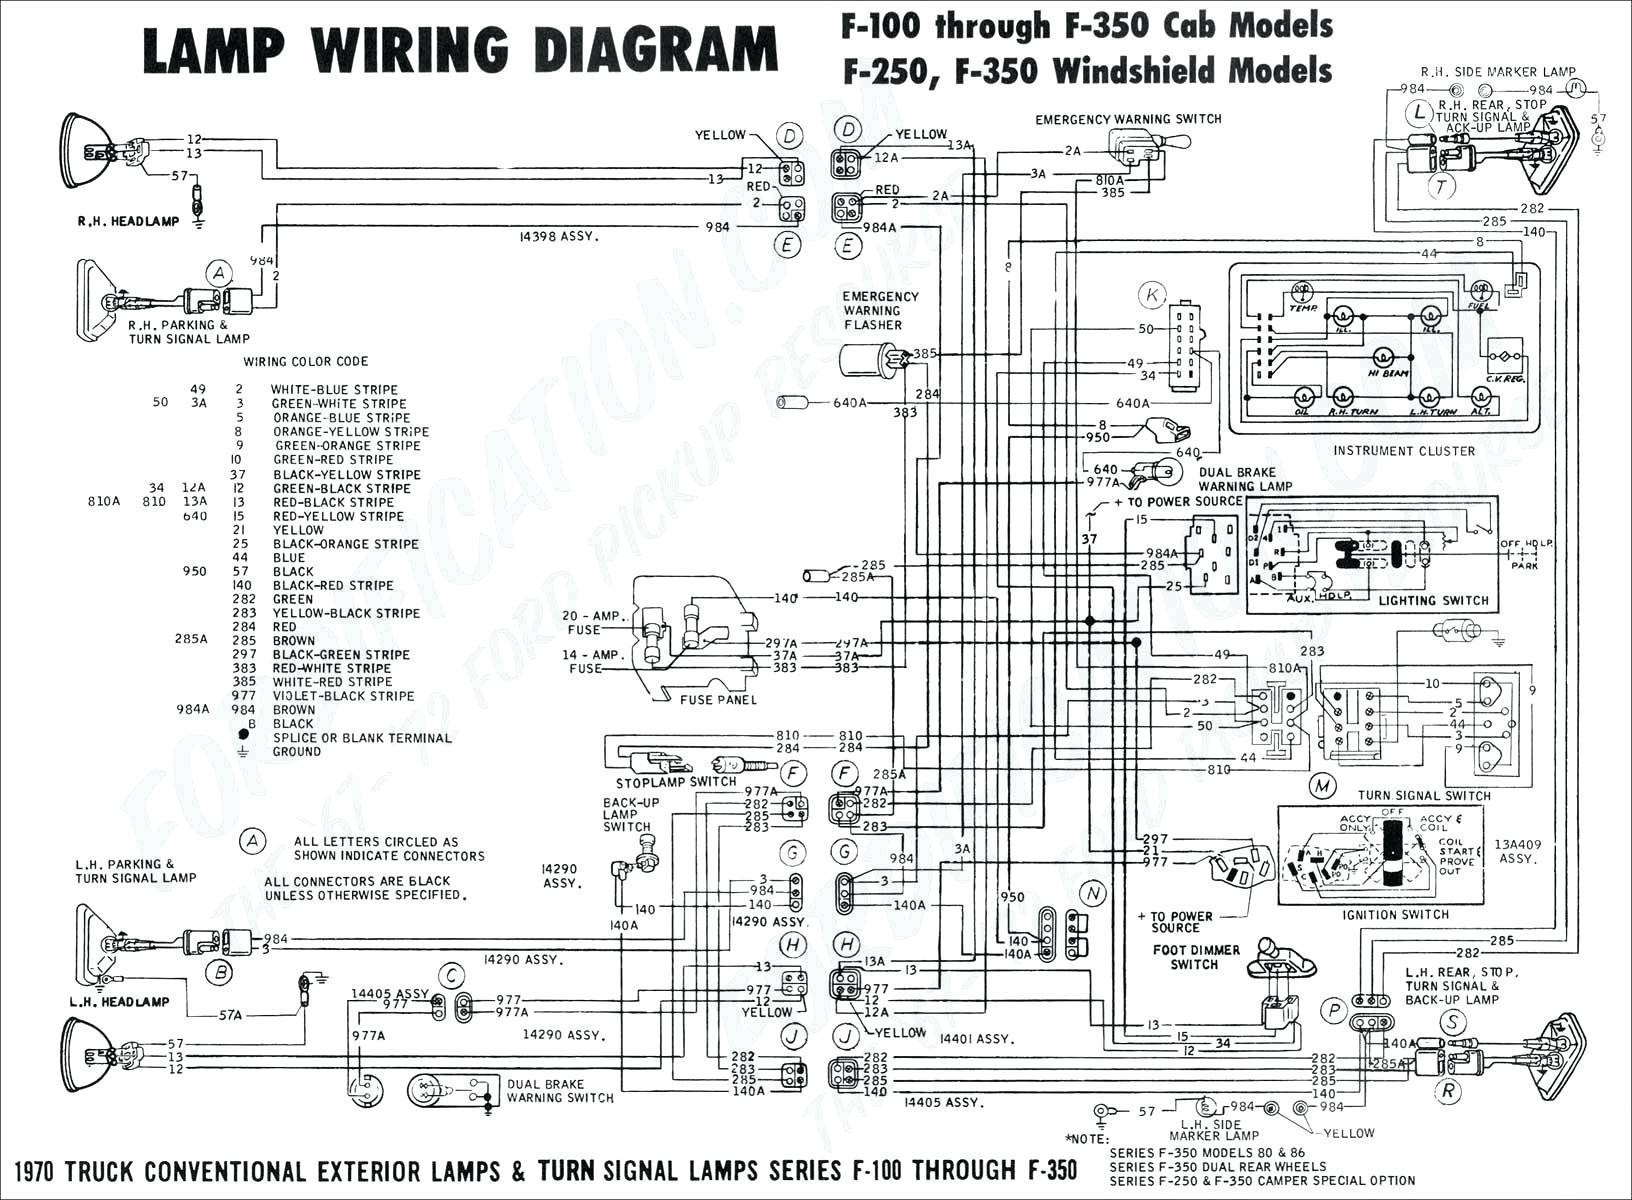 1997 geo metro engine diagram